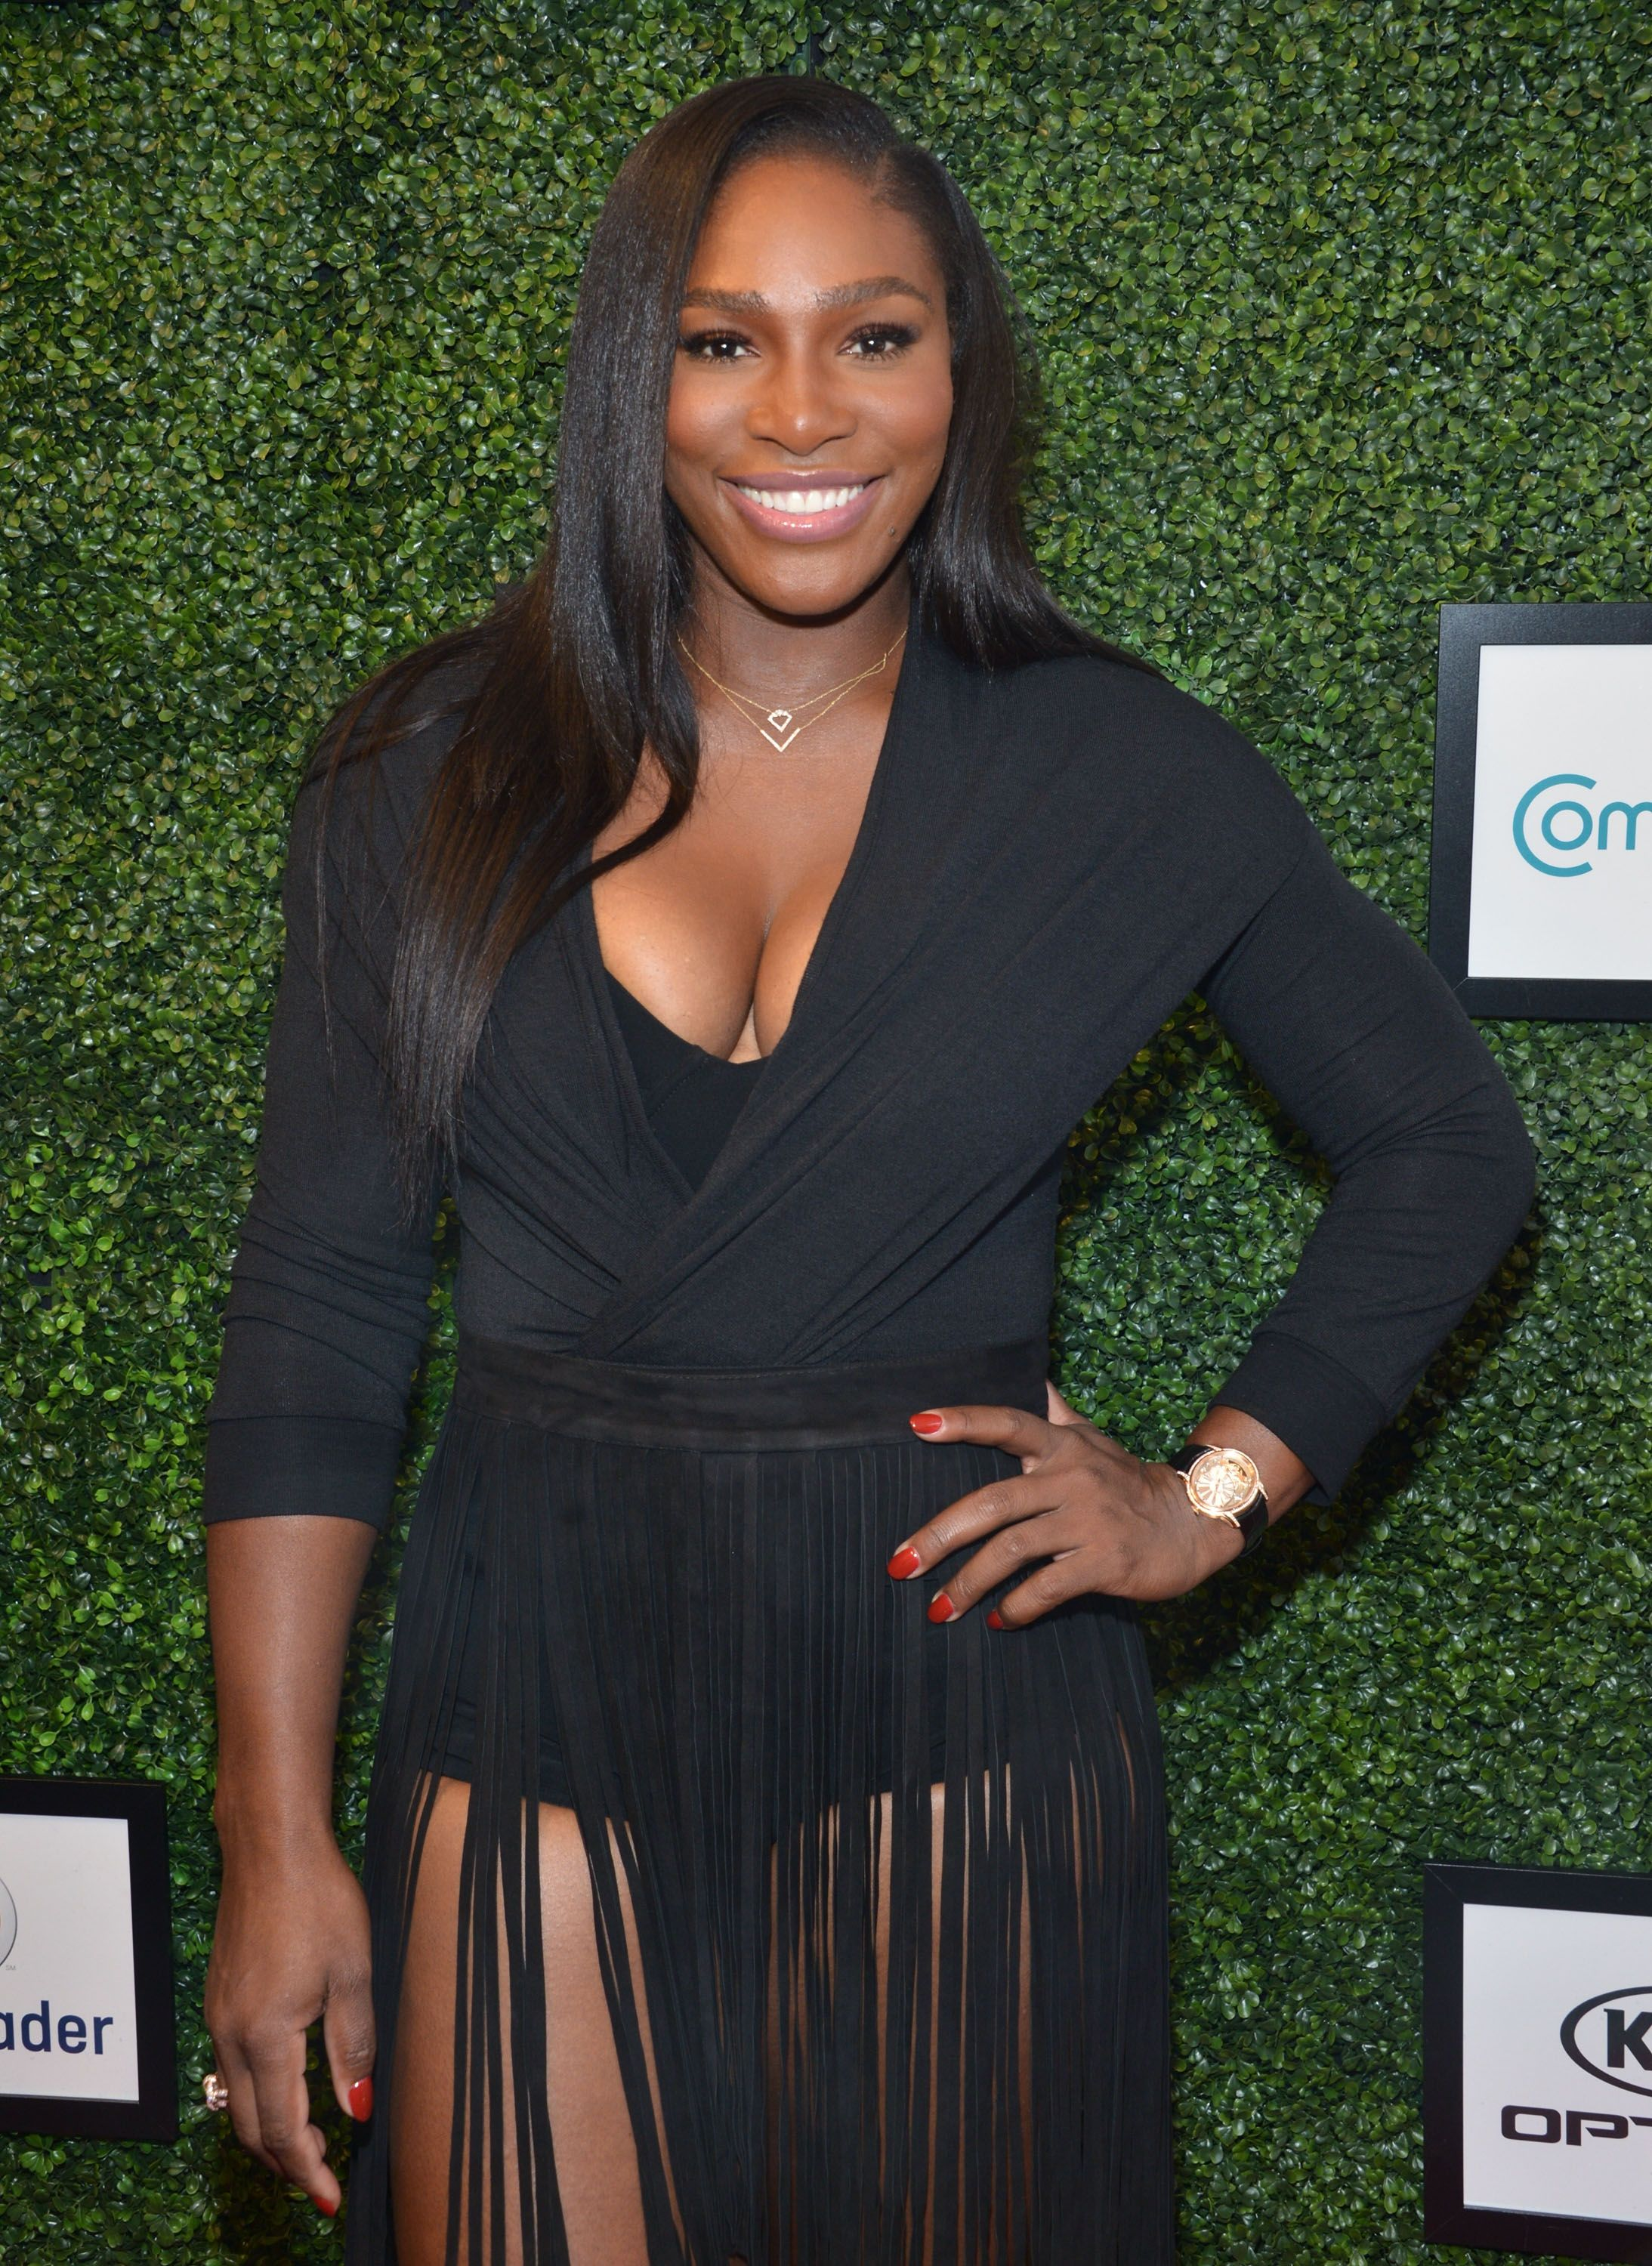 Serena Willams attends the Serena Williams Signature Statement by HSN show during Spring 2016 Style360 | Photo: Getty Images